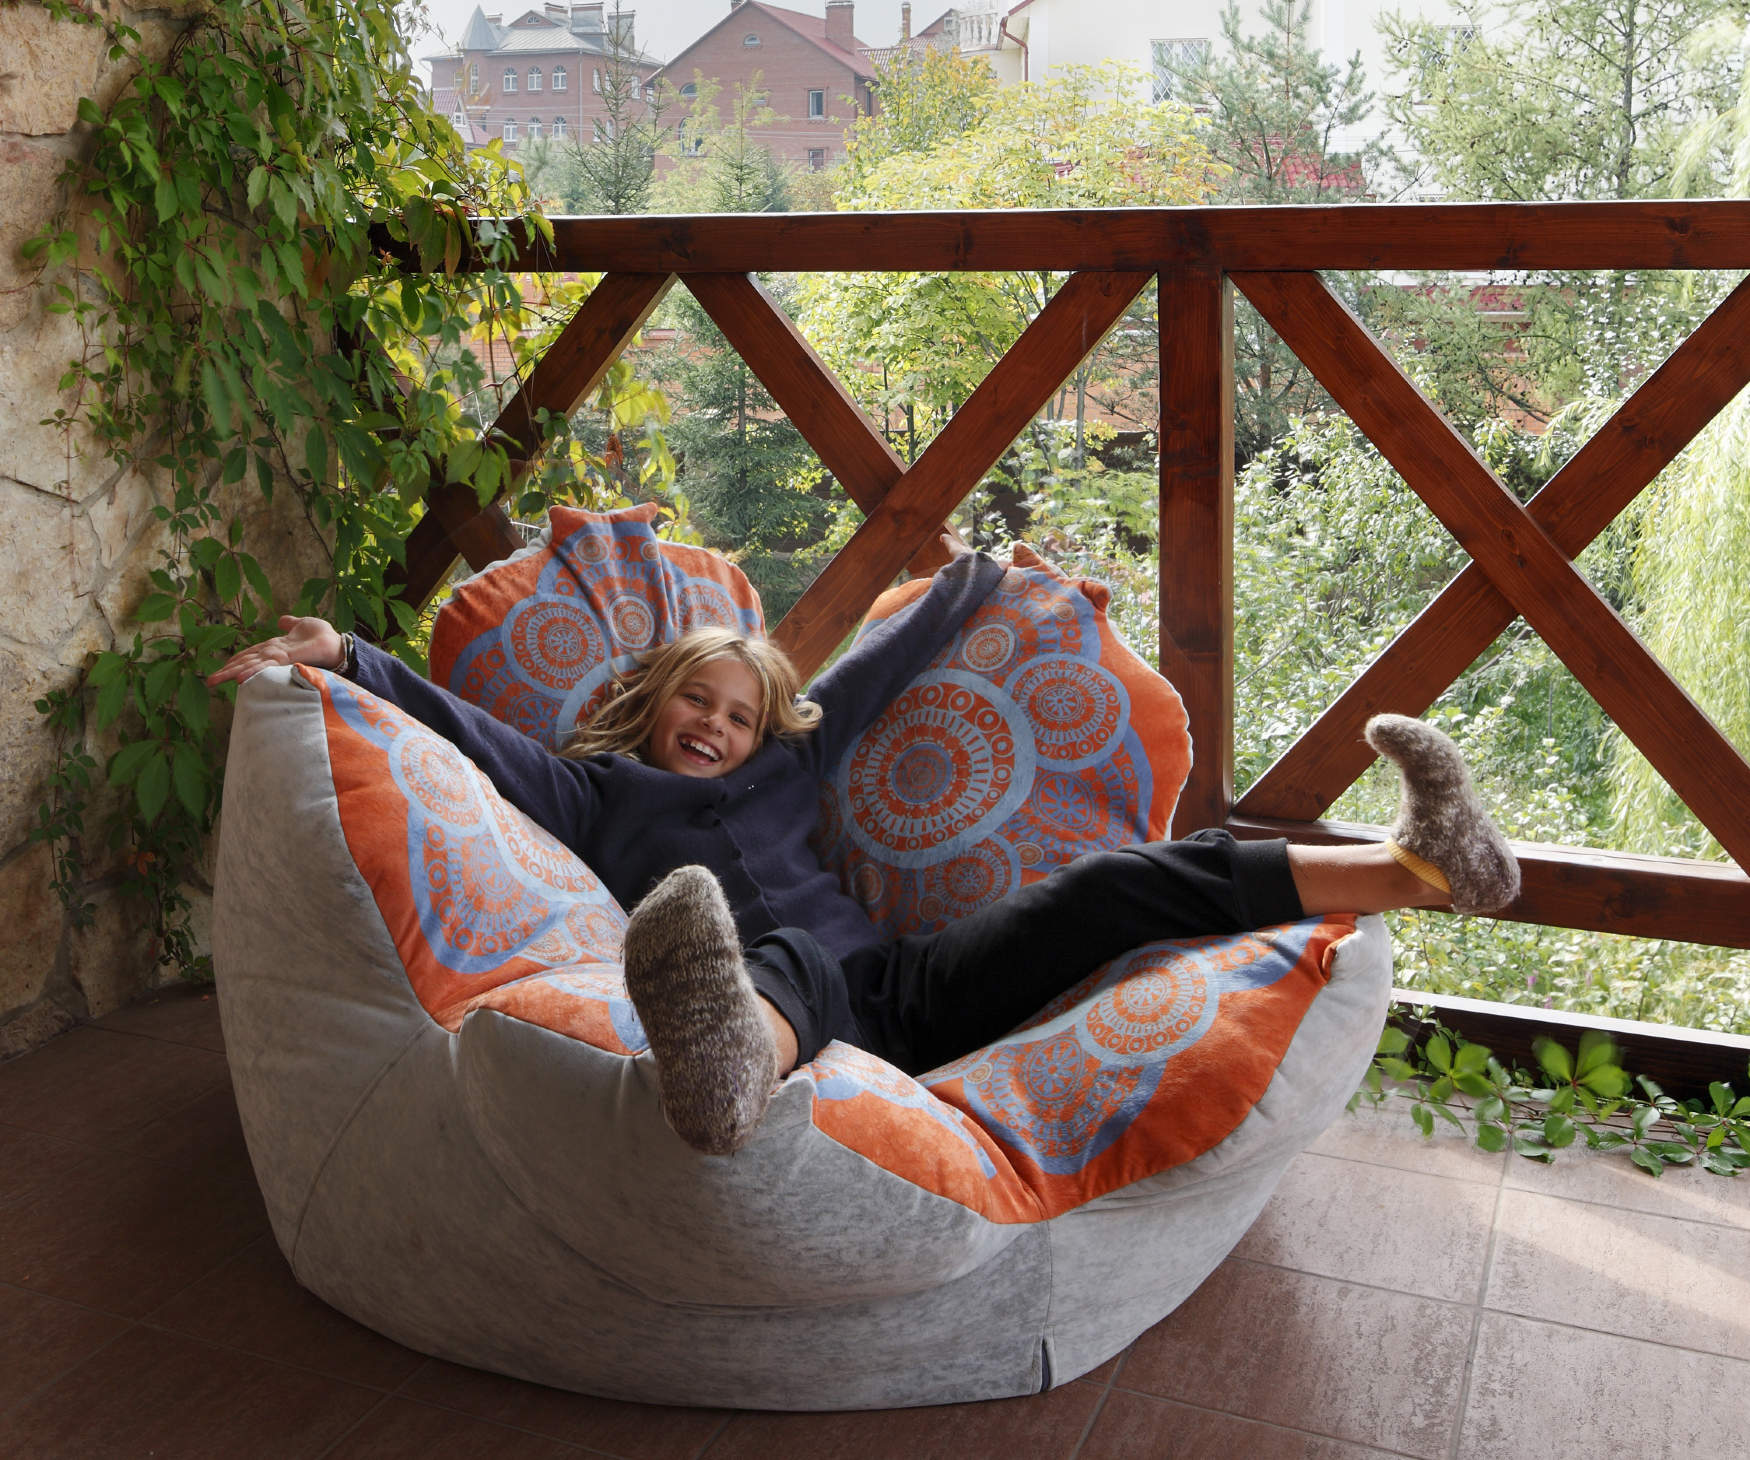 Bean bag chair. Fresh Modern Interior Design Idea for any Room. relaxing Rustic atmosphere translated through natural materials. Flower formed chair for the little rascals